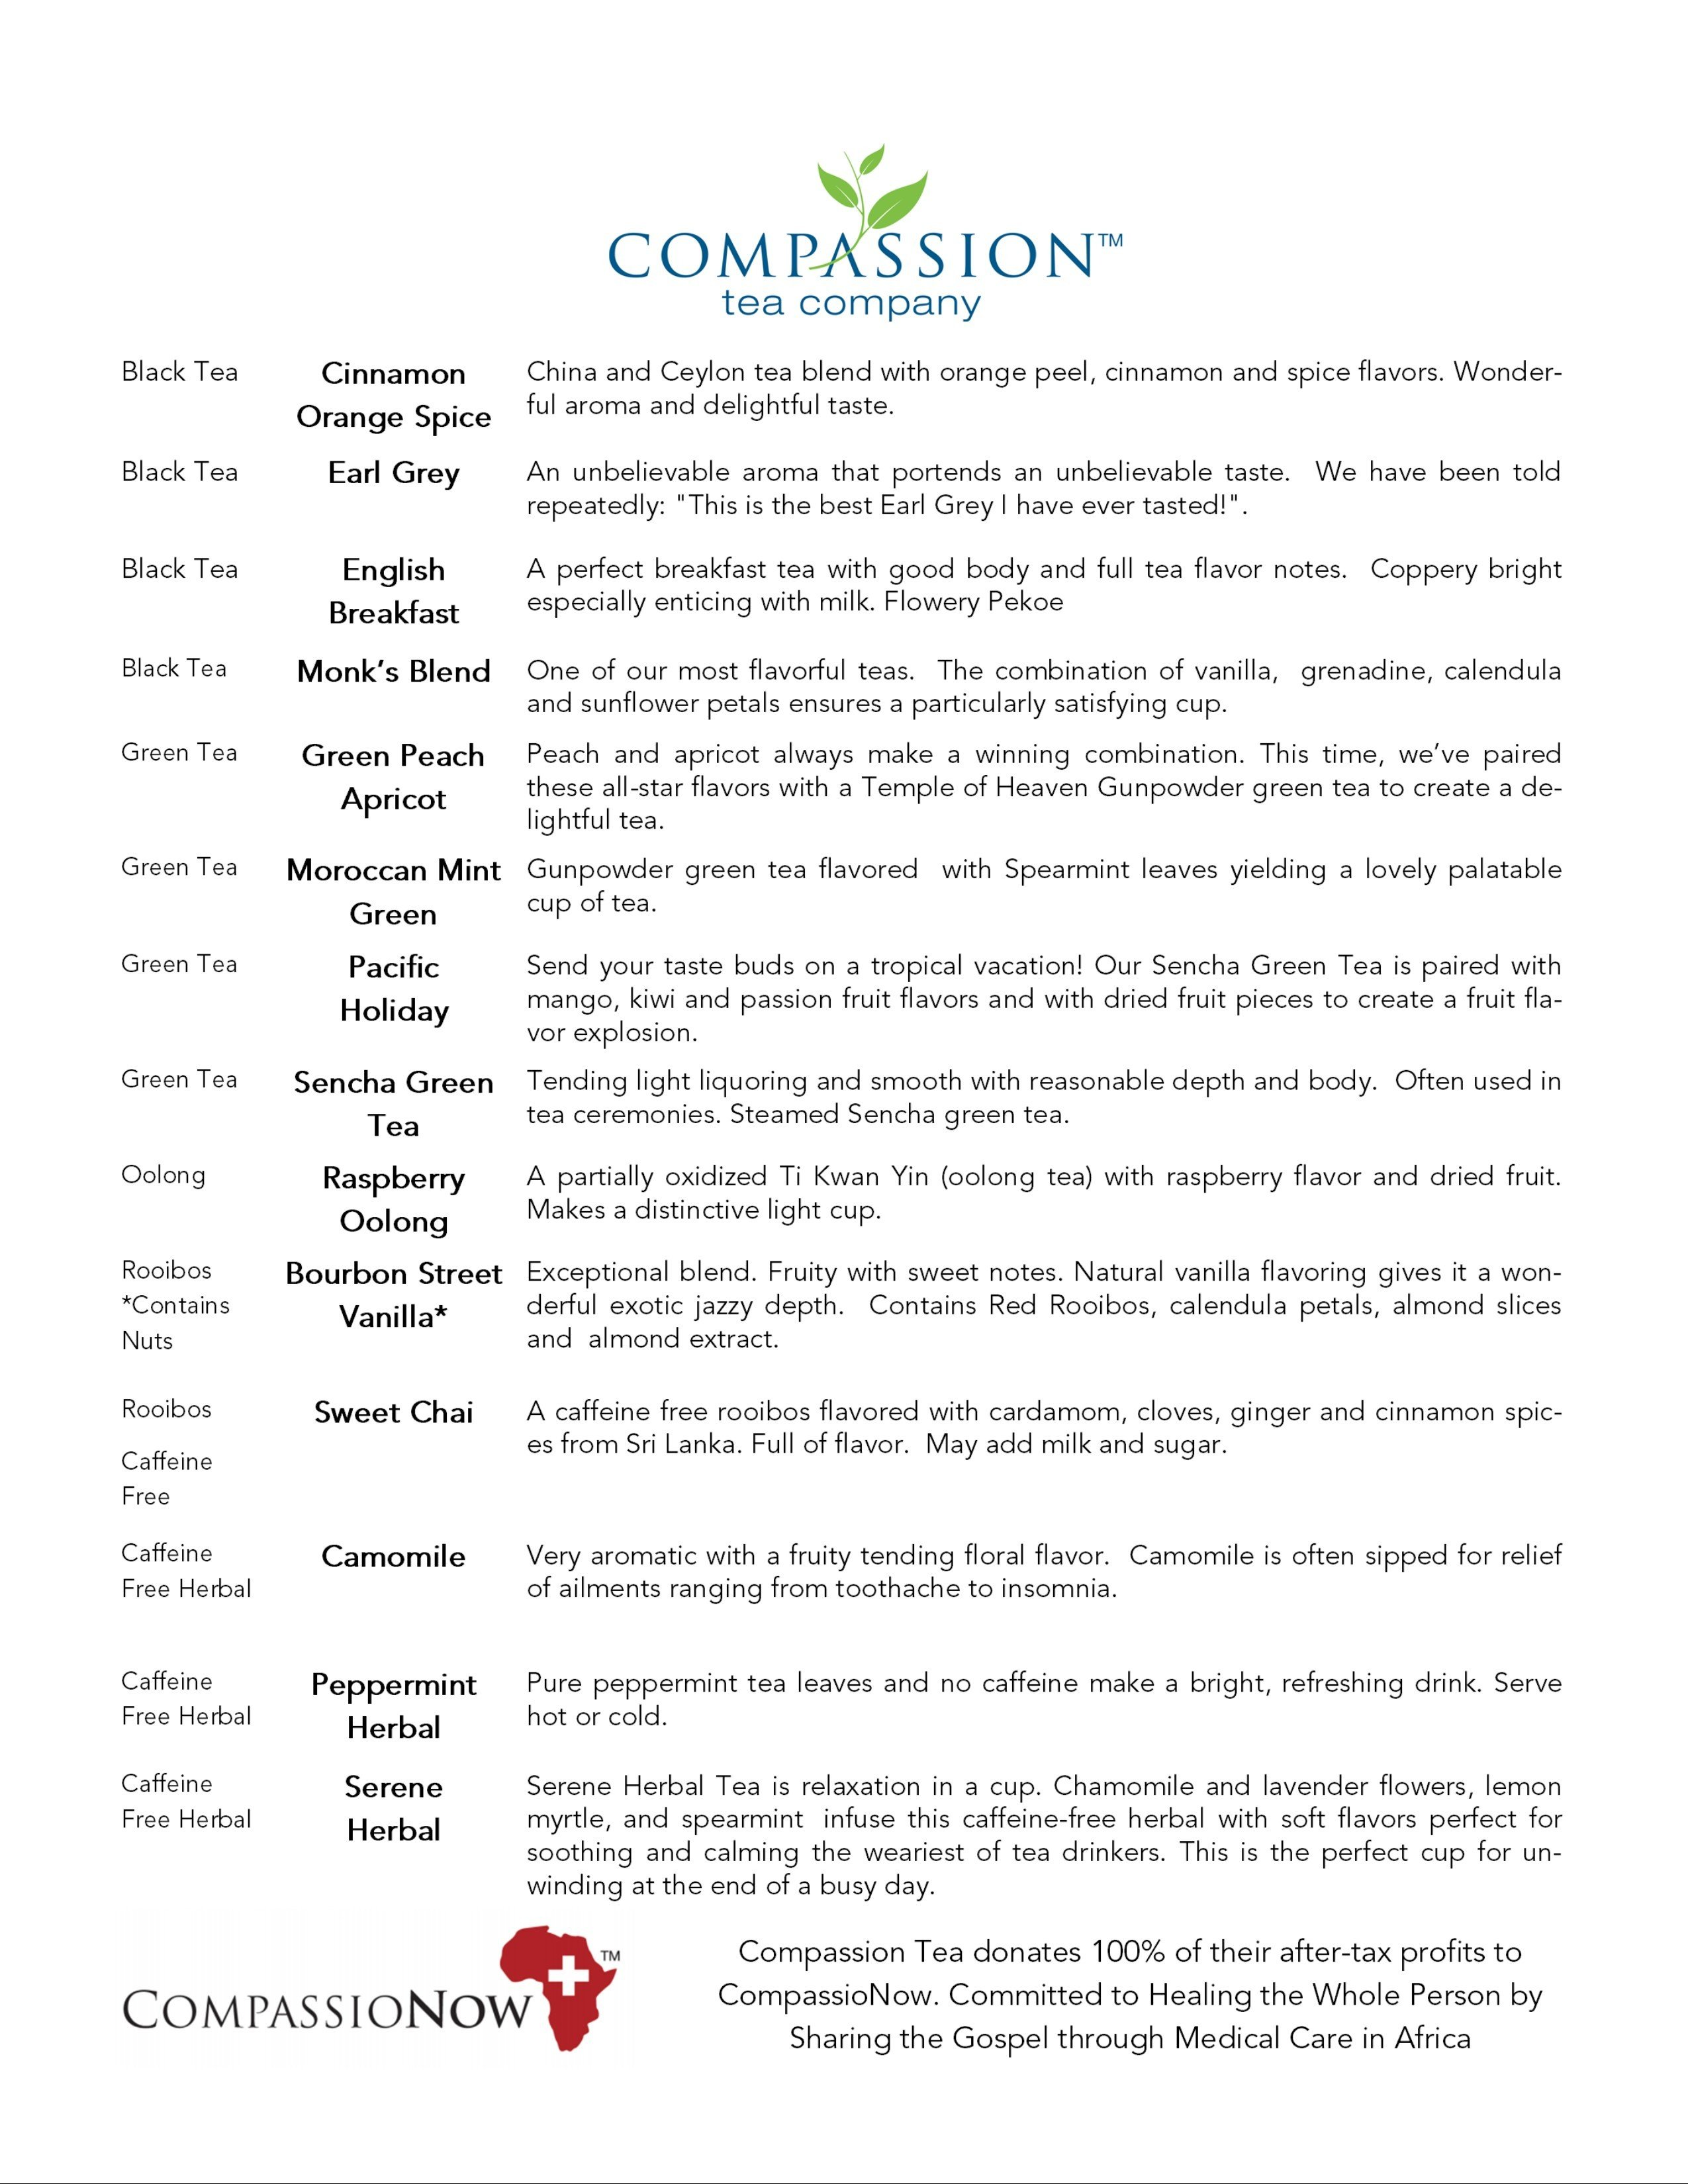 Types of Tea with Compassion Tea